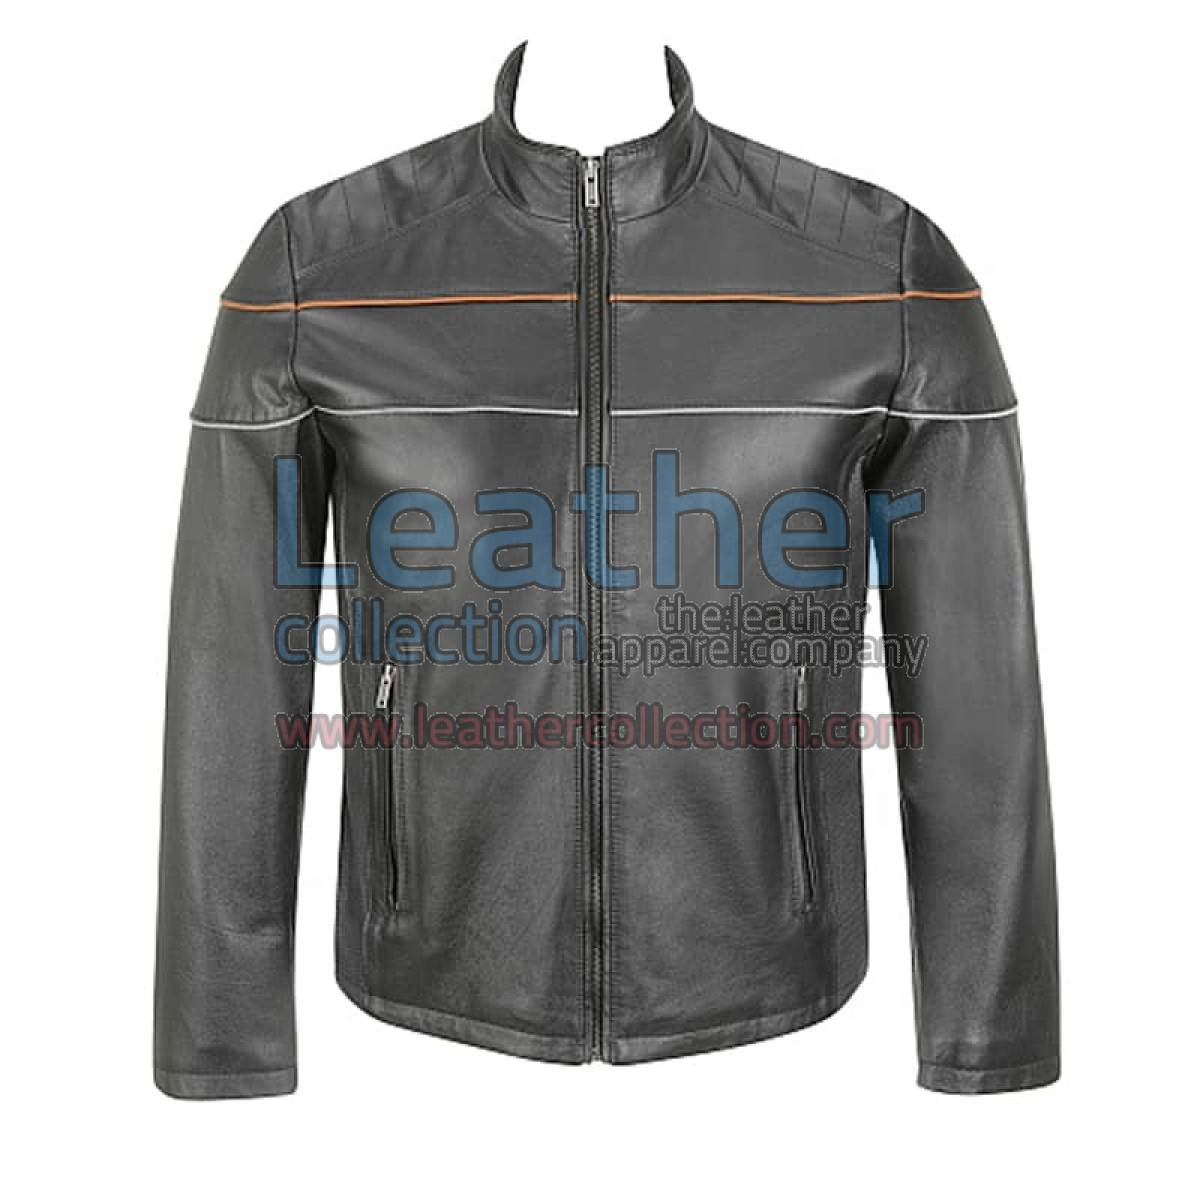 Leather Moto Jacket With Piping On Chest